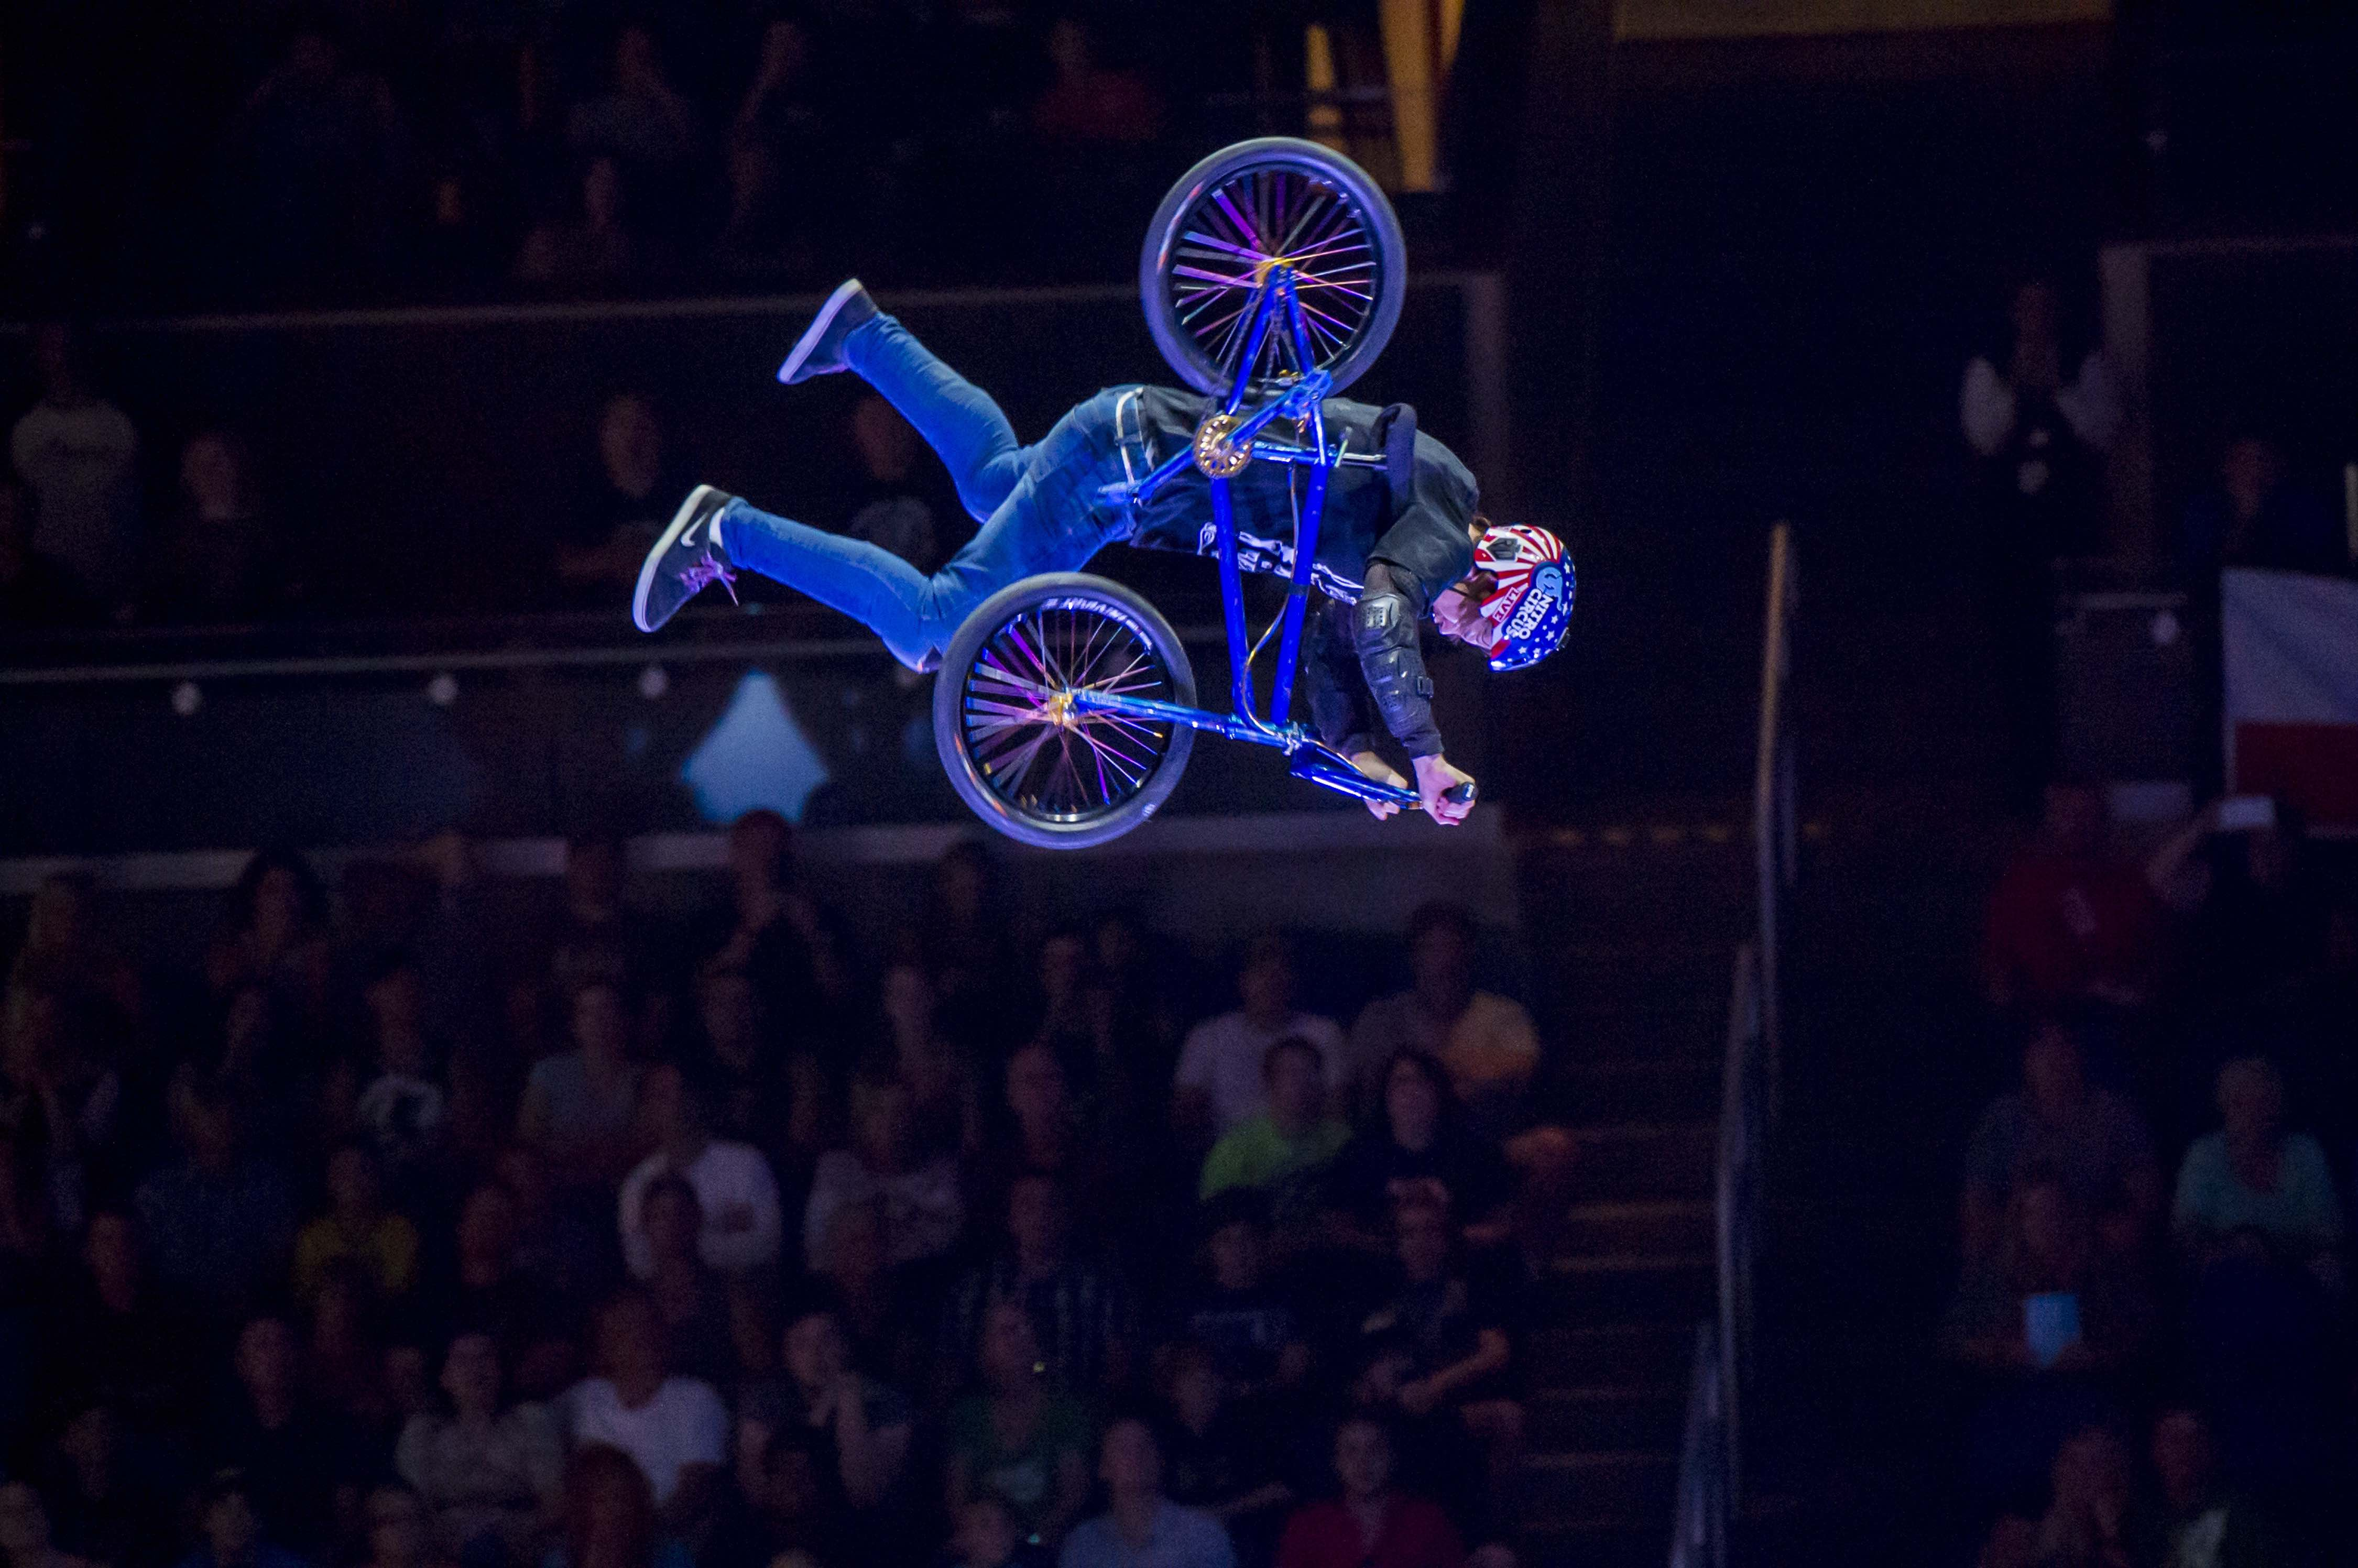 Ryan Williams showcasing his BMX skills at Nitro Circus Live